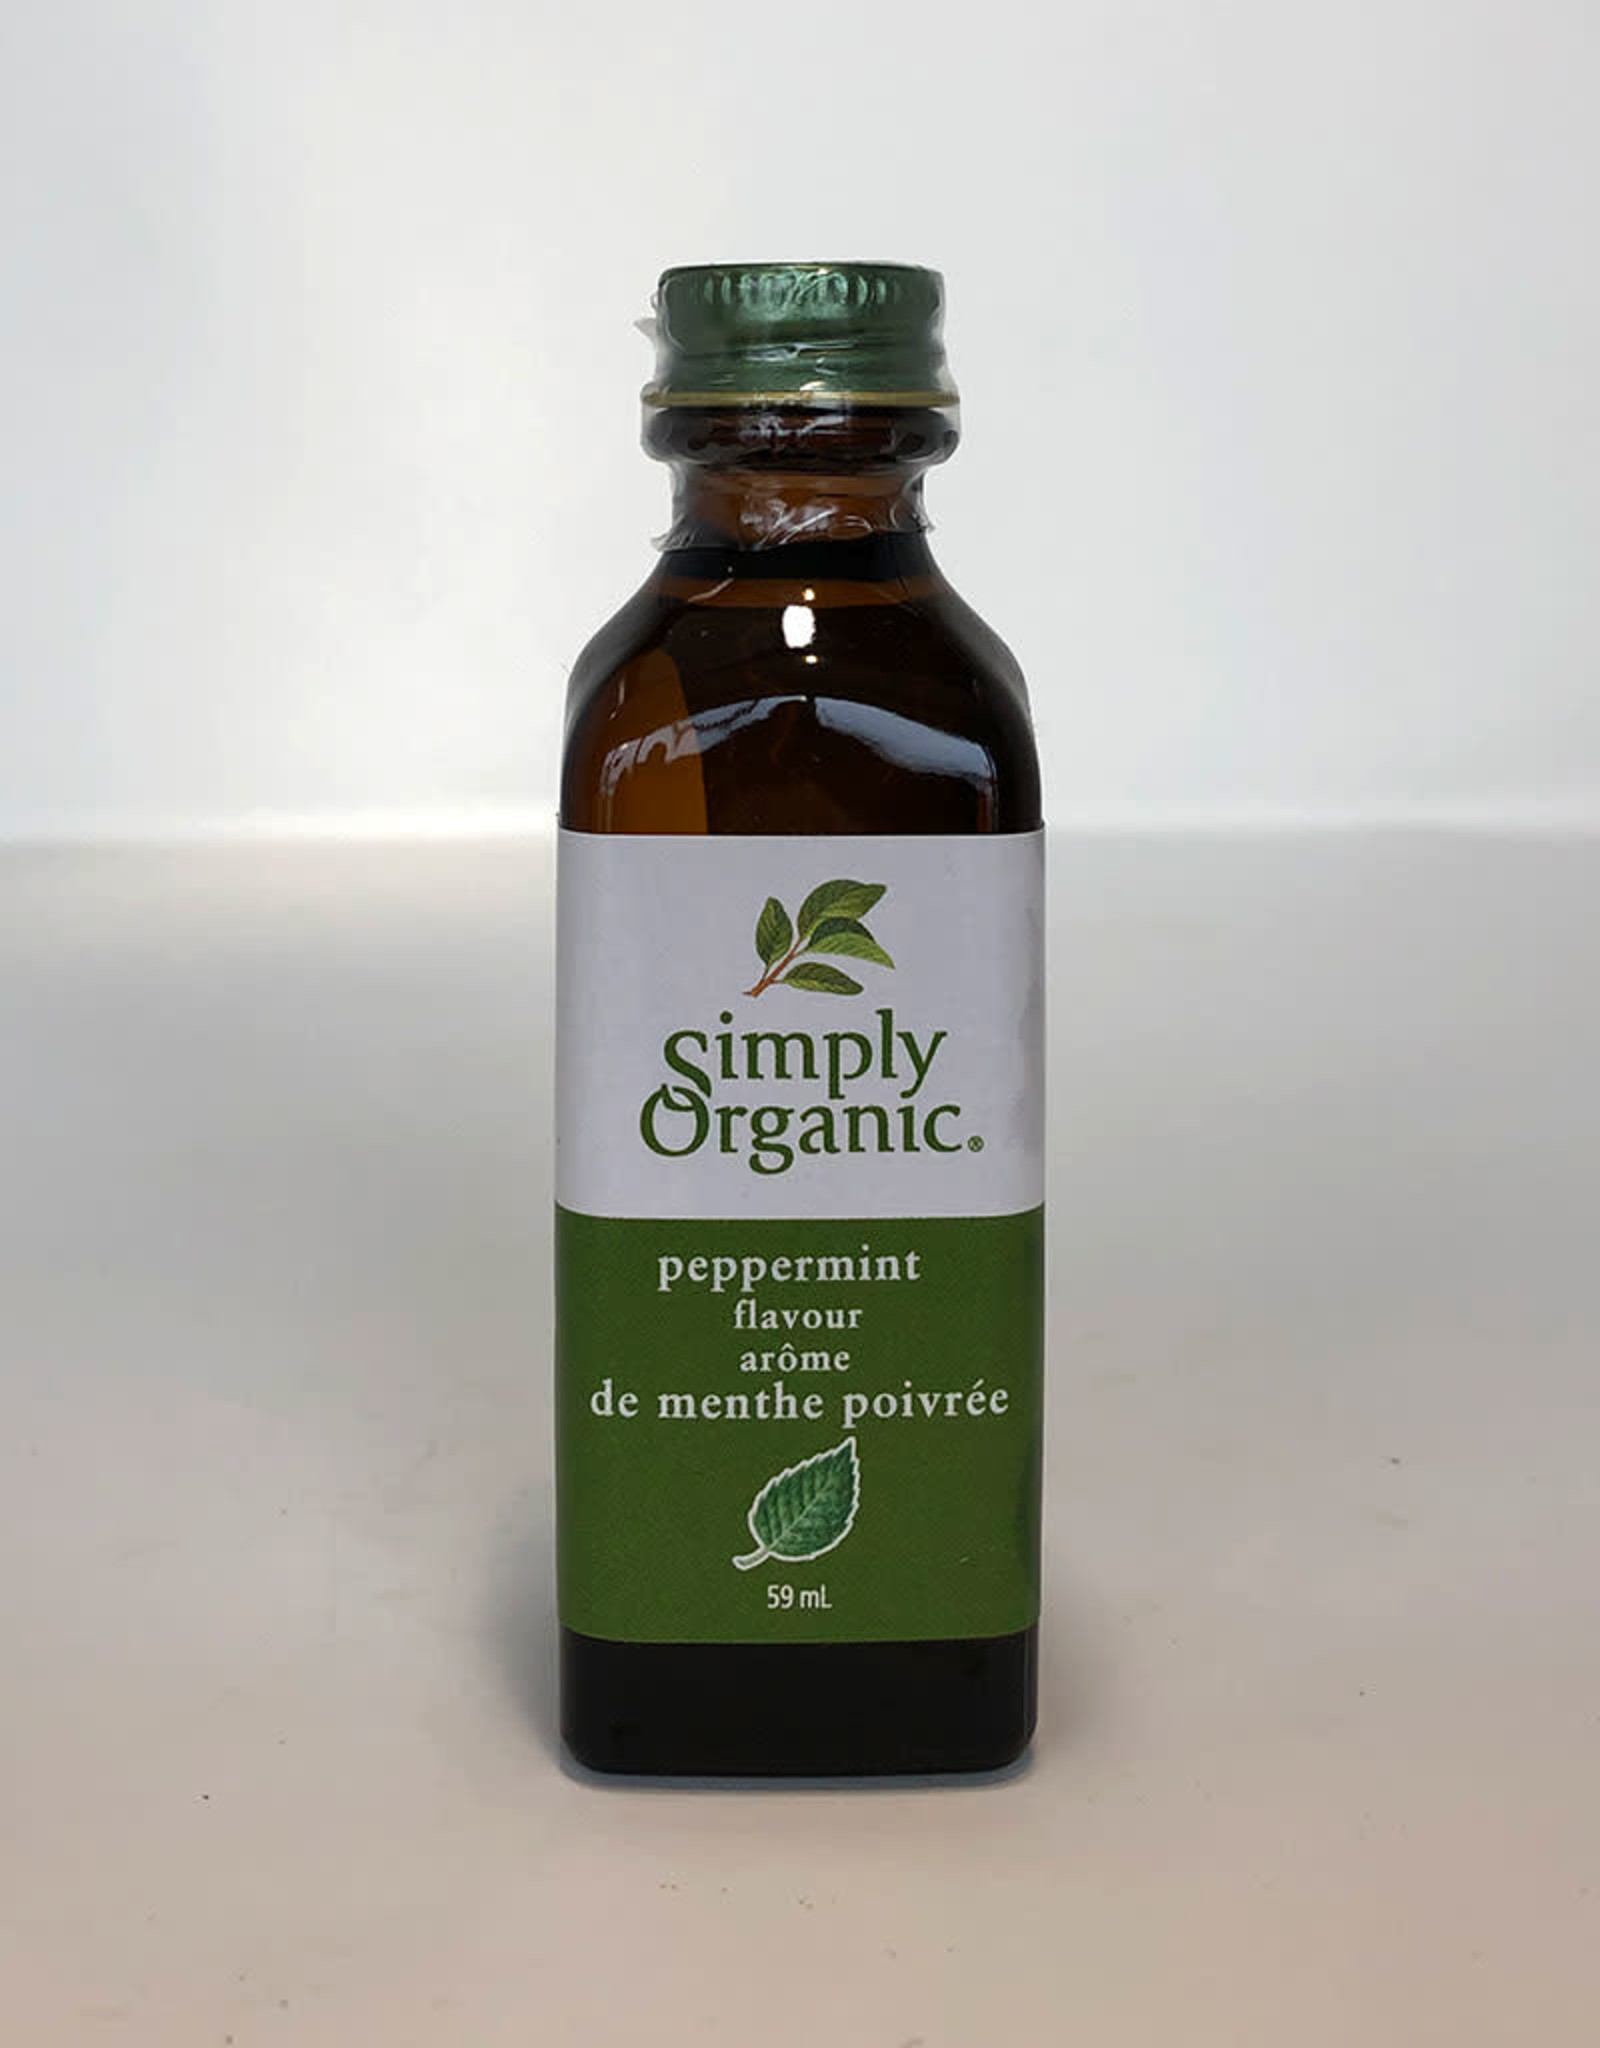 Simply Organic Simply Organic - Peppermint Extract (59ml)